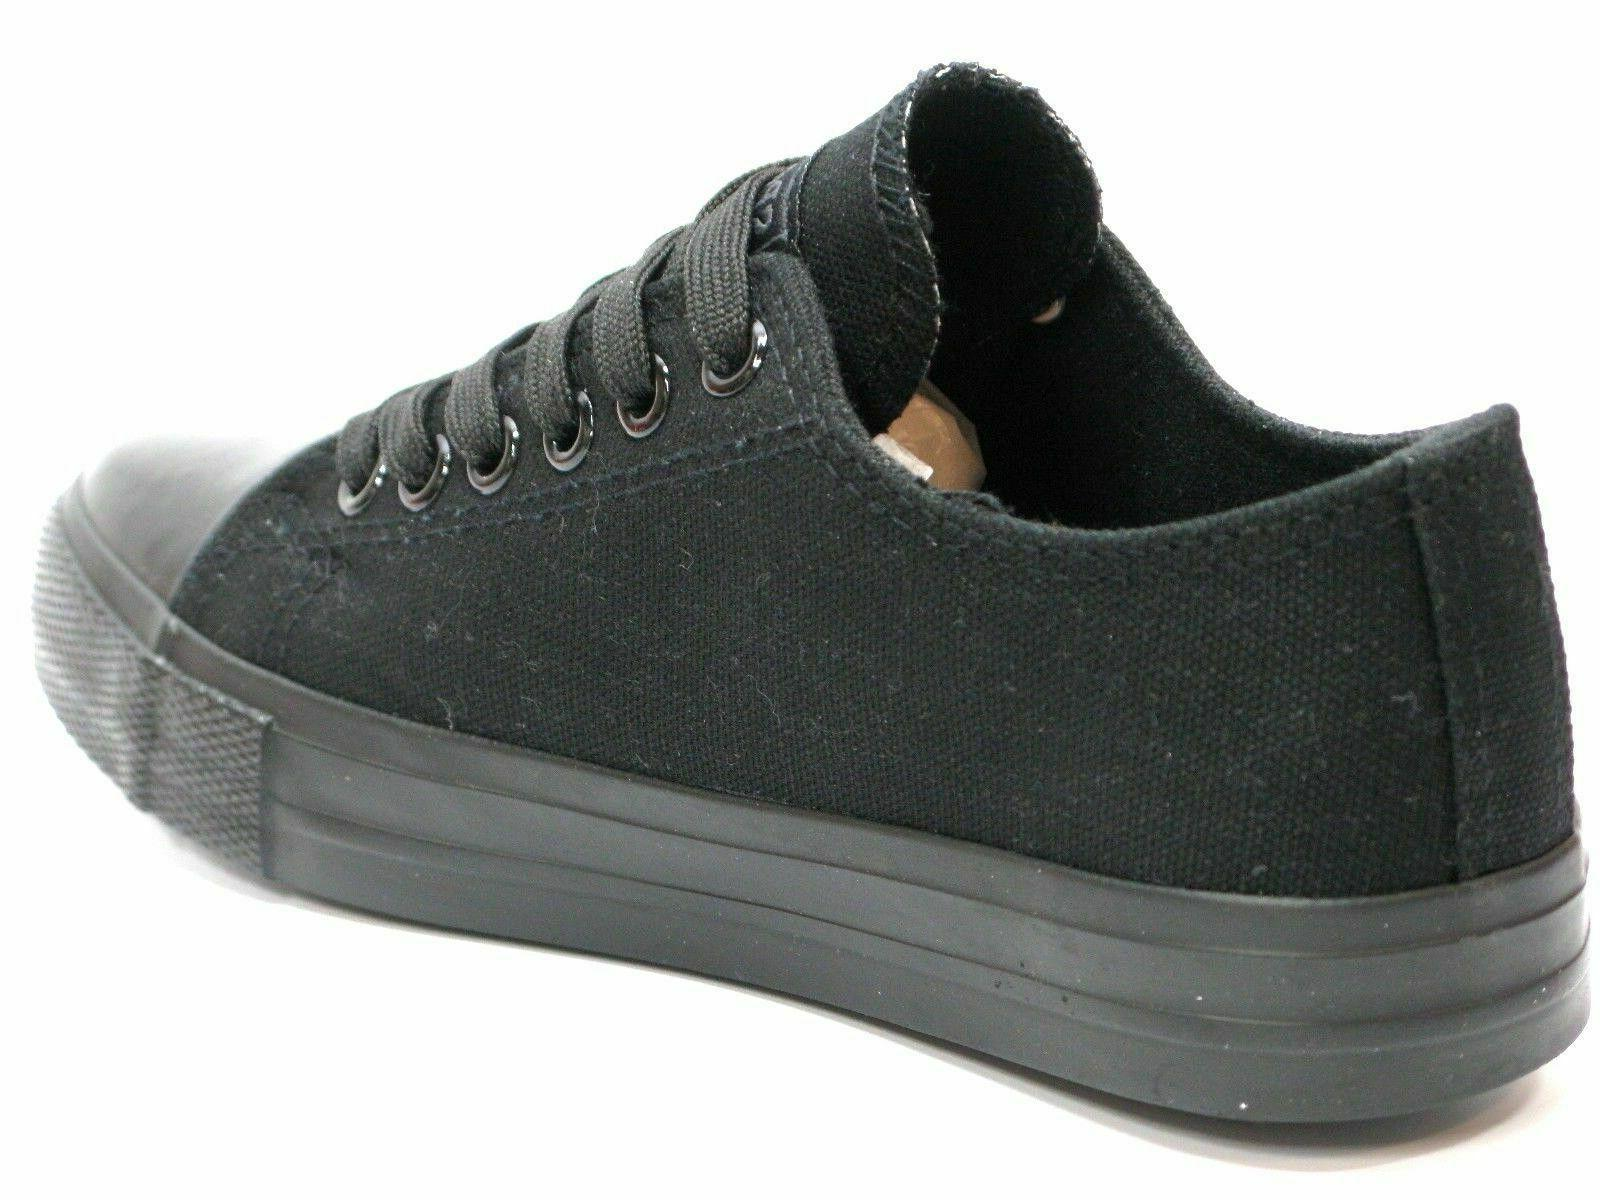 New Mens Lace Up Sneakers 7-12